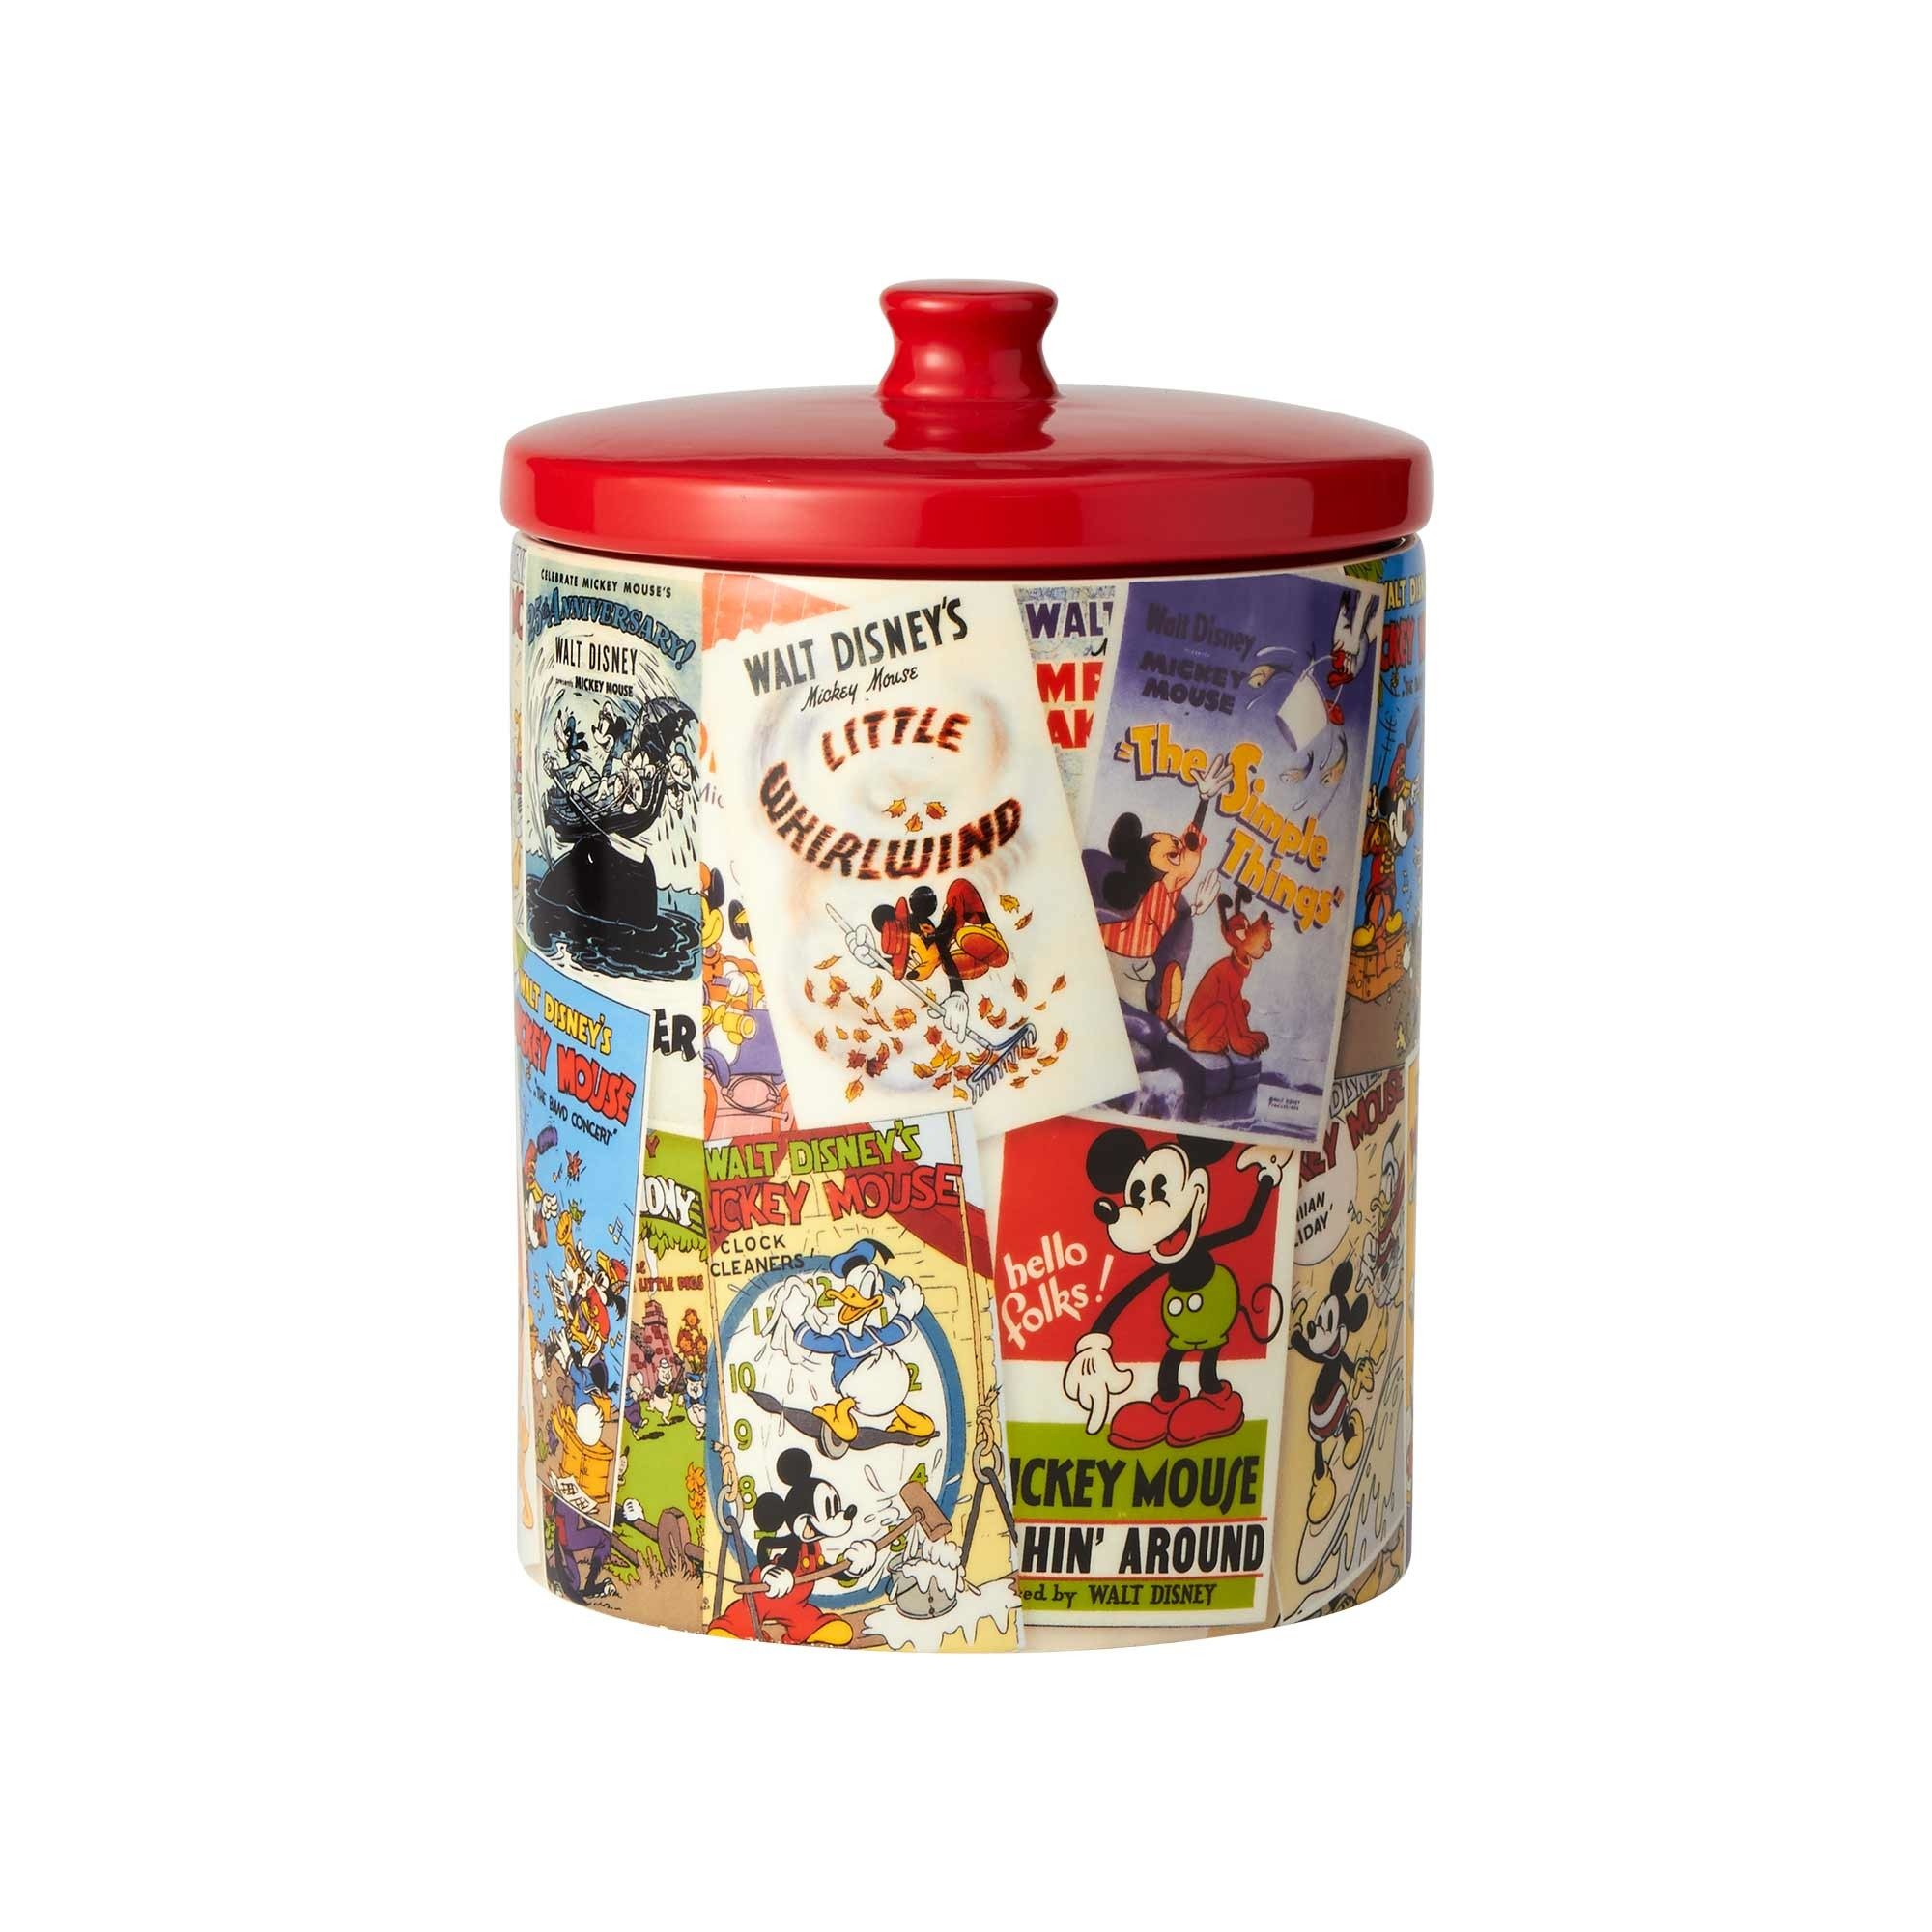 Enesco Disney Ceramics Mickey Mouse Collage Cookie Jar, 9.25'', Multicolor